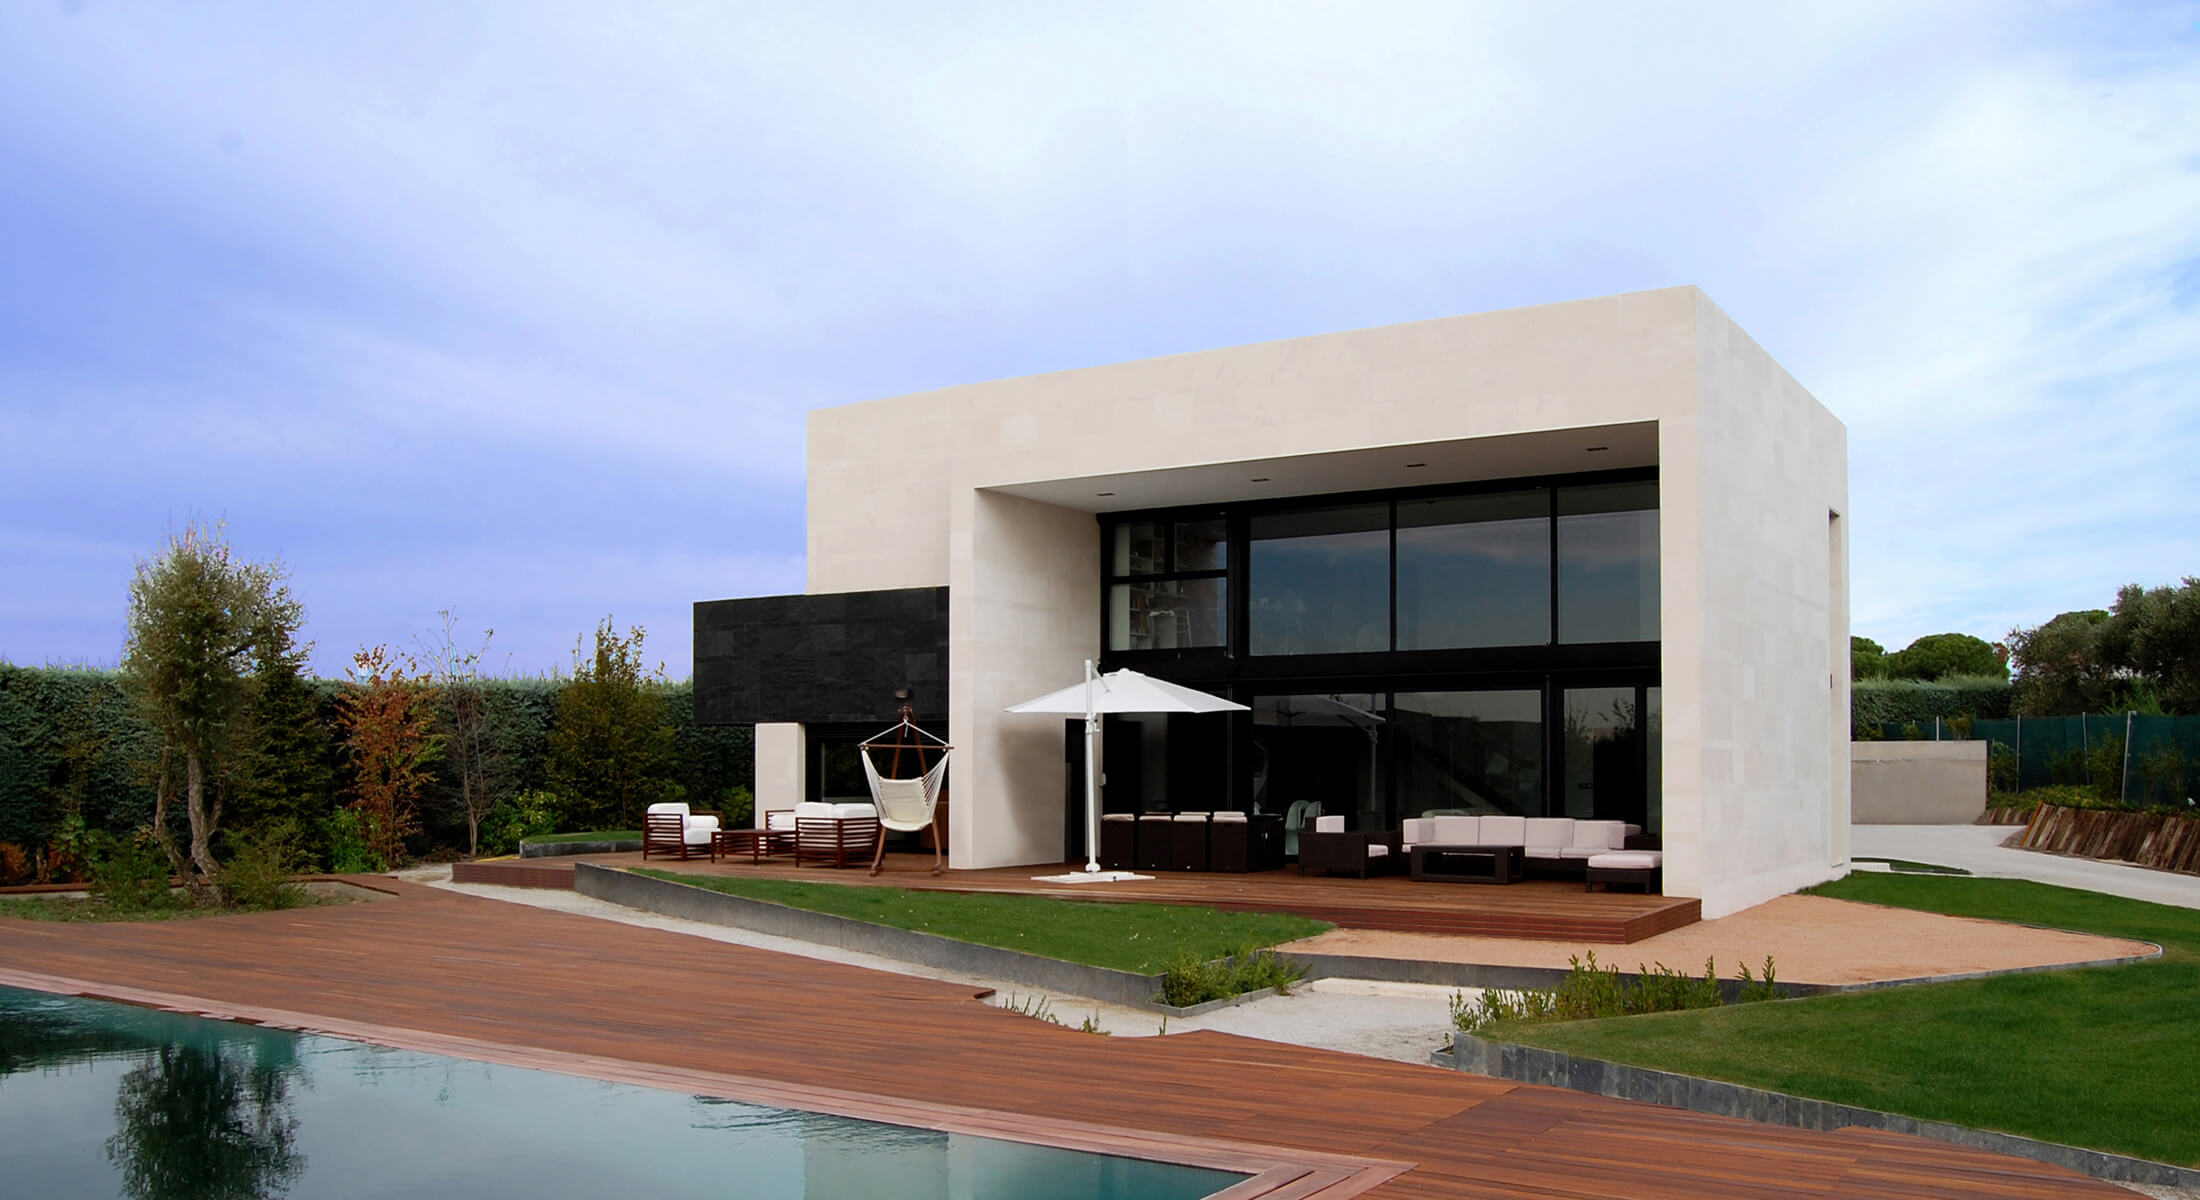 Boadilla house designed by Marta González Architects